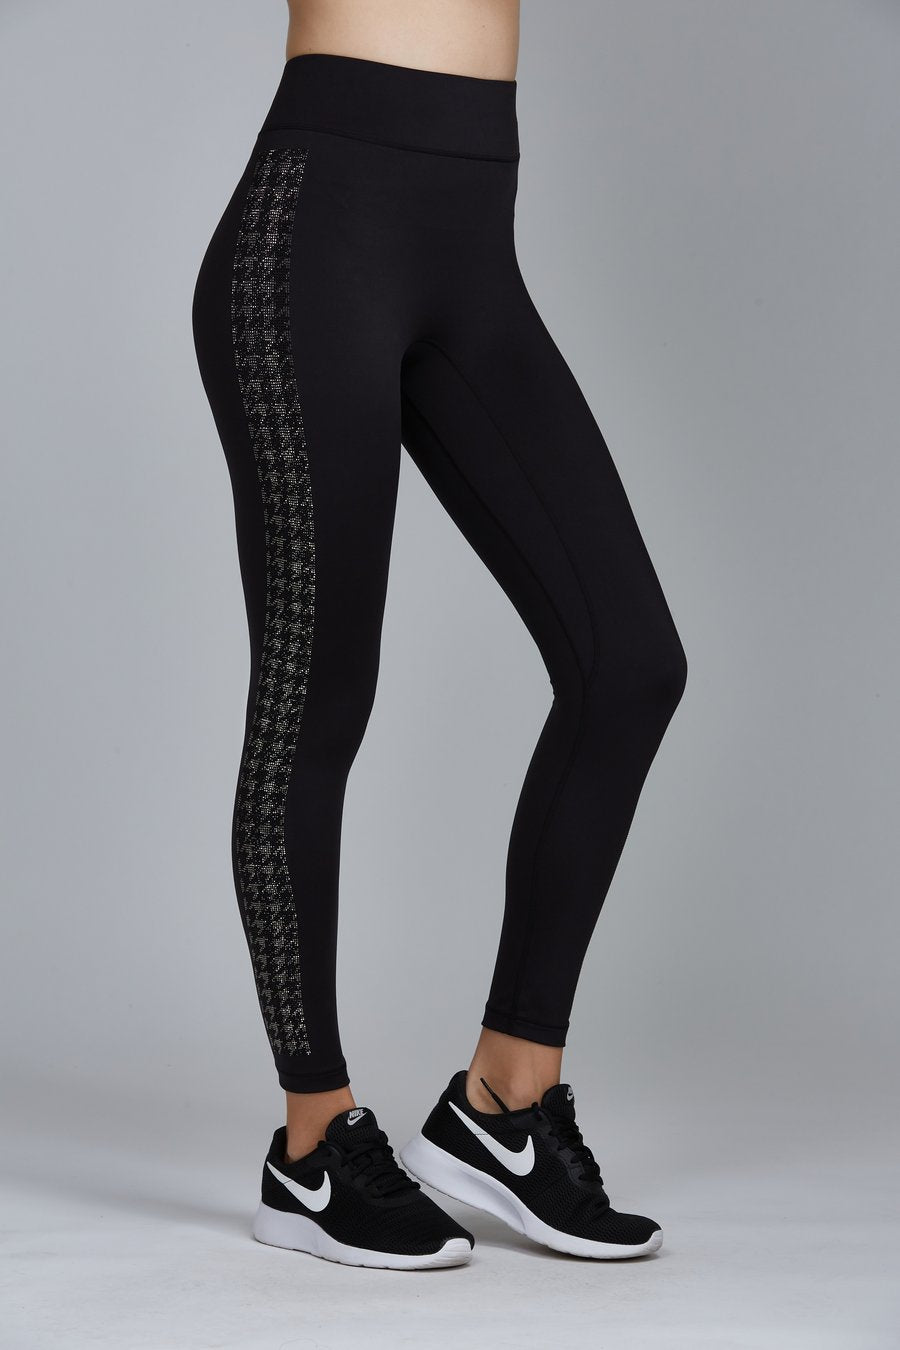 CRYSTAL HOUNDSTOOTH LEGGING BLACK LABEL | NOLI